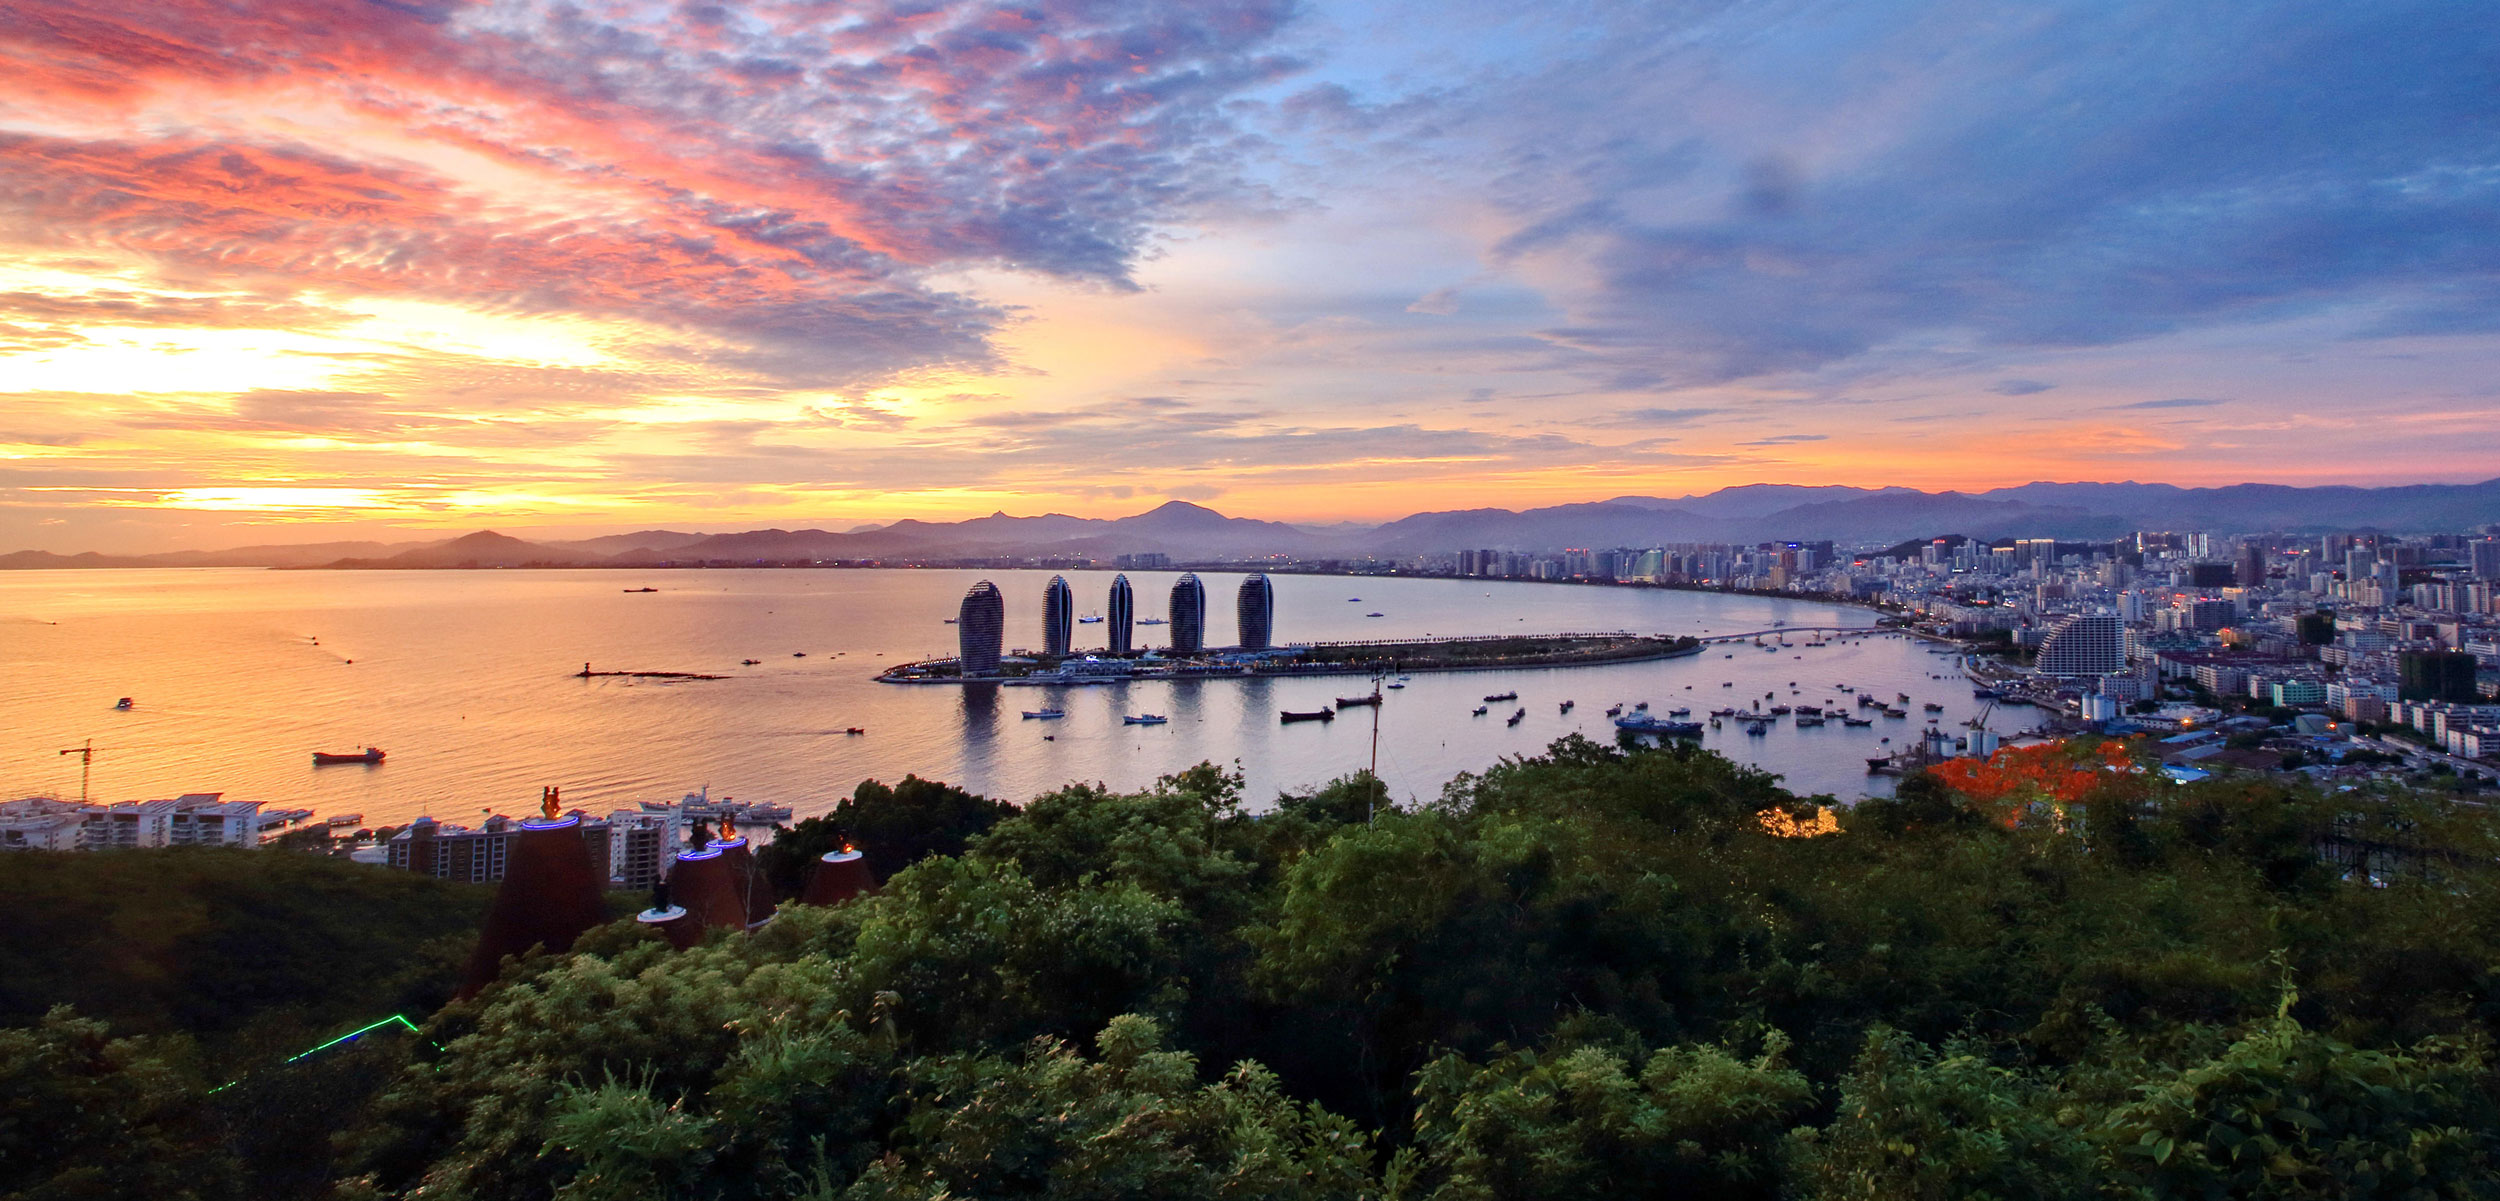 Sanya, Hainan, China at sunset